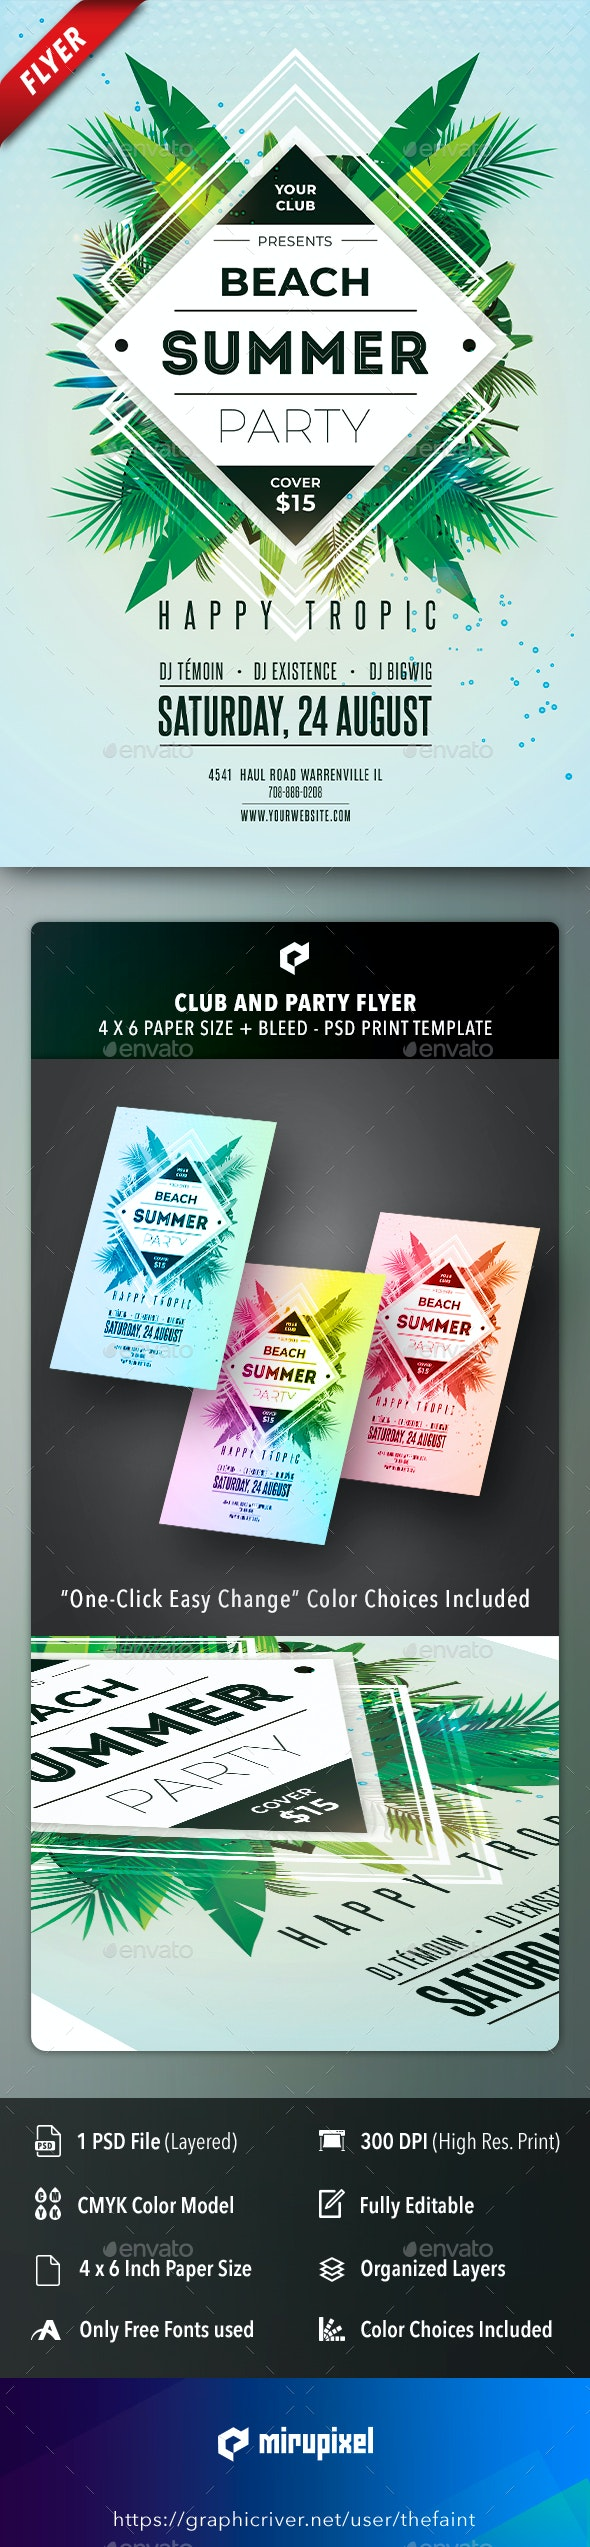 Beach Summer Club and Party Flyer - Clubs & Parties Events